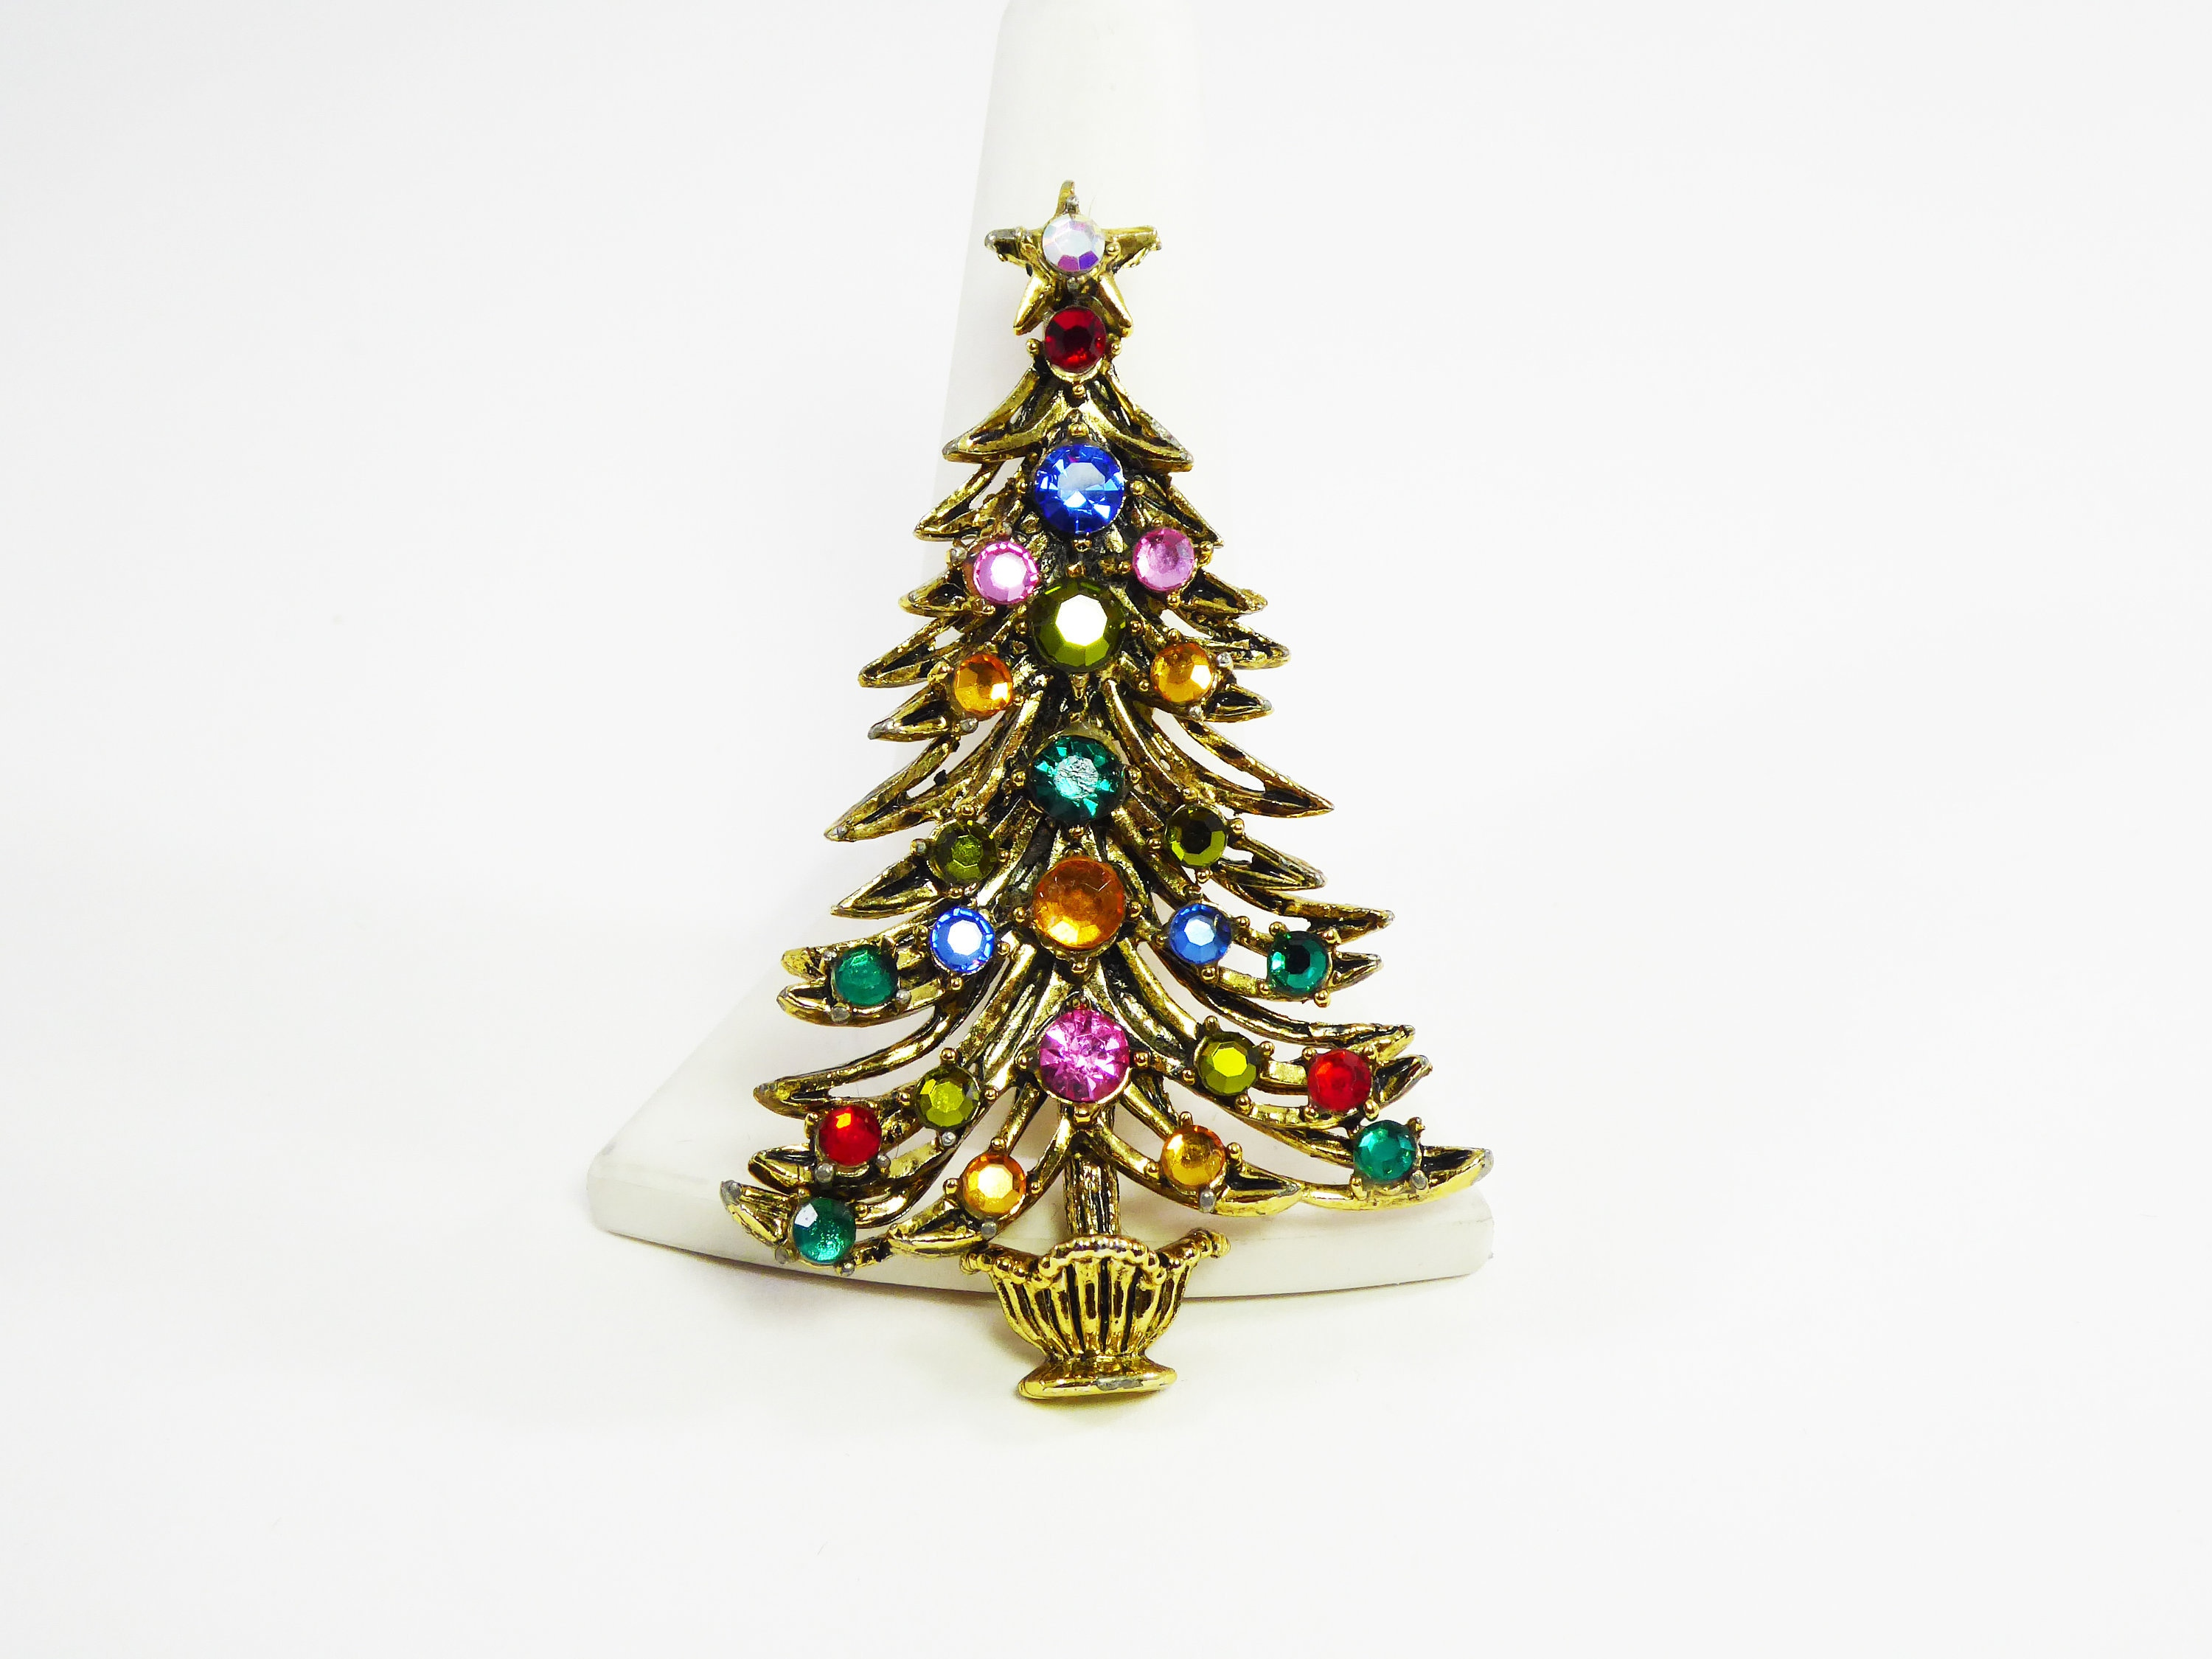 2cc47bf46 Hollycraft Christmas Tree Brooch Multi Colored Rhinestones & Star ...